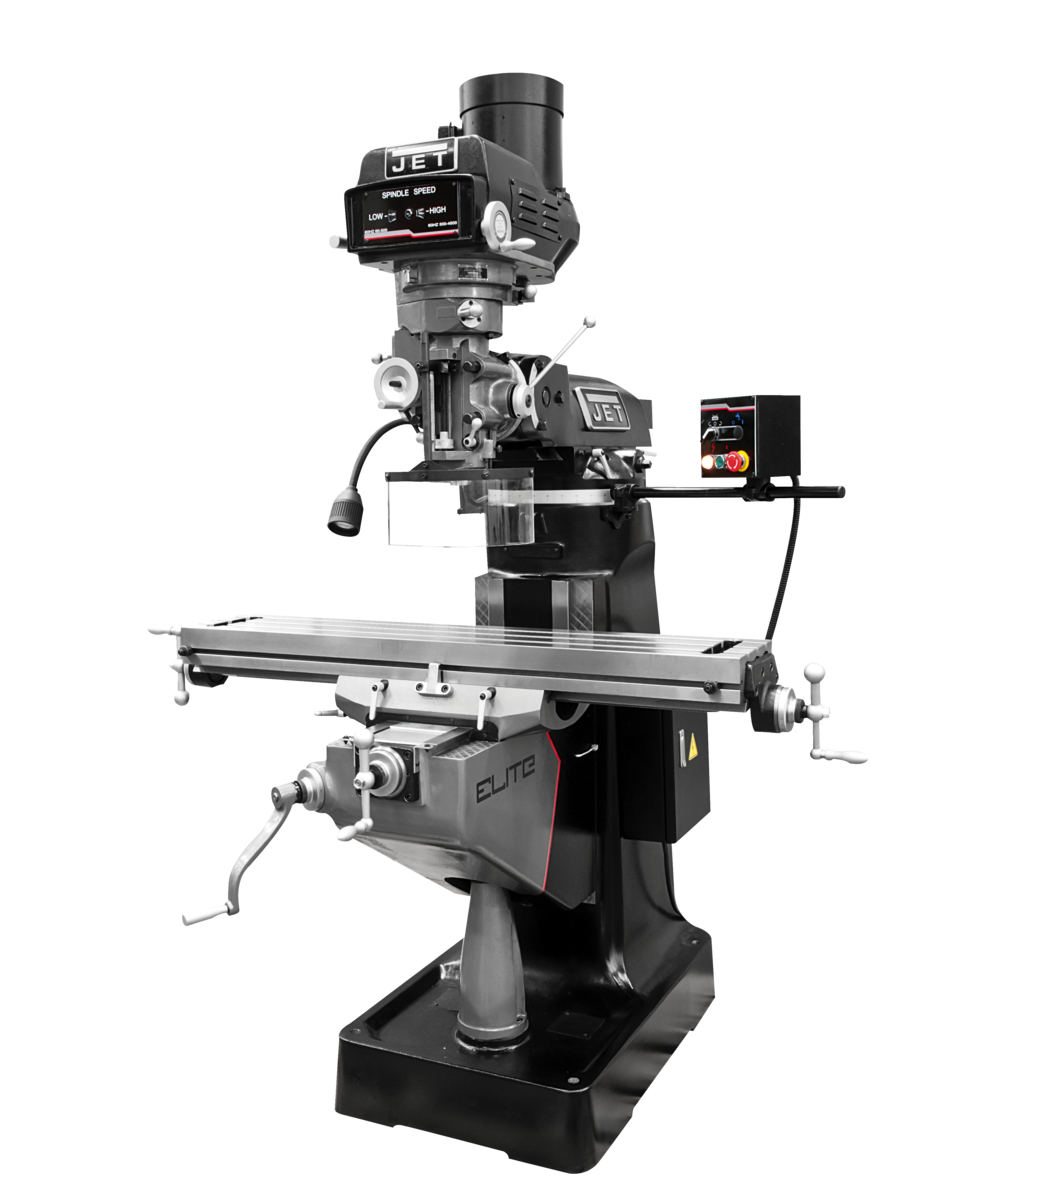 ETM-949 Mill with 3-Axis ACU-RITE 303 (Quill) DRO and Servo X-Axis Powerfeed and USA Air Powered Draw Bar